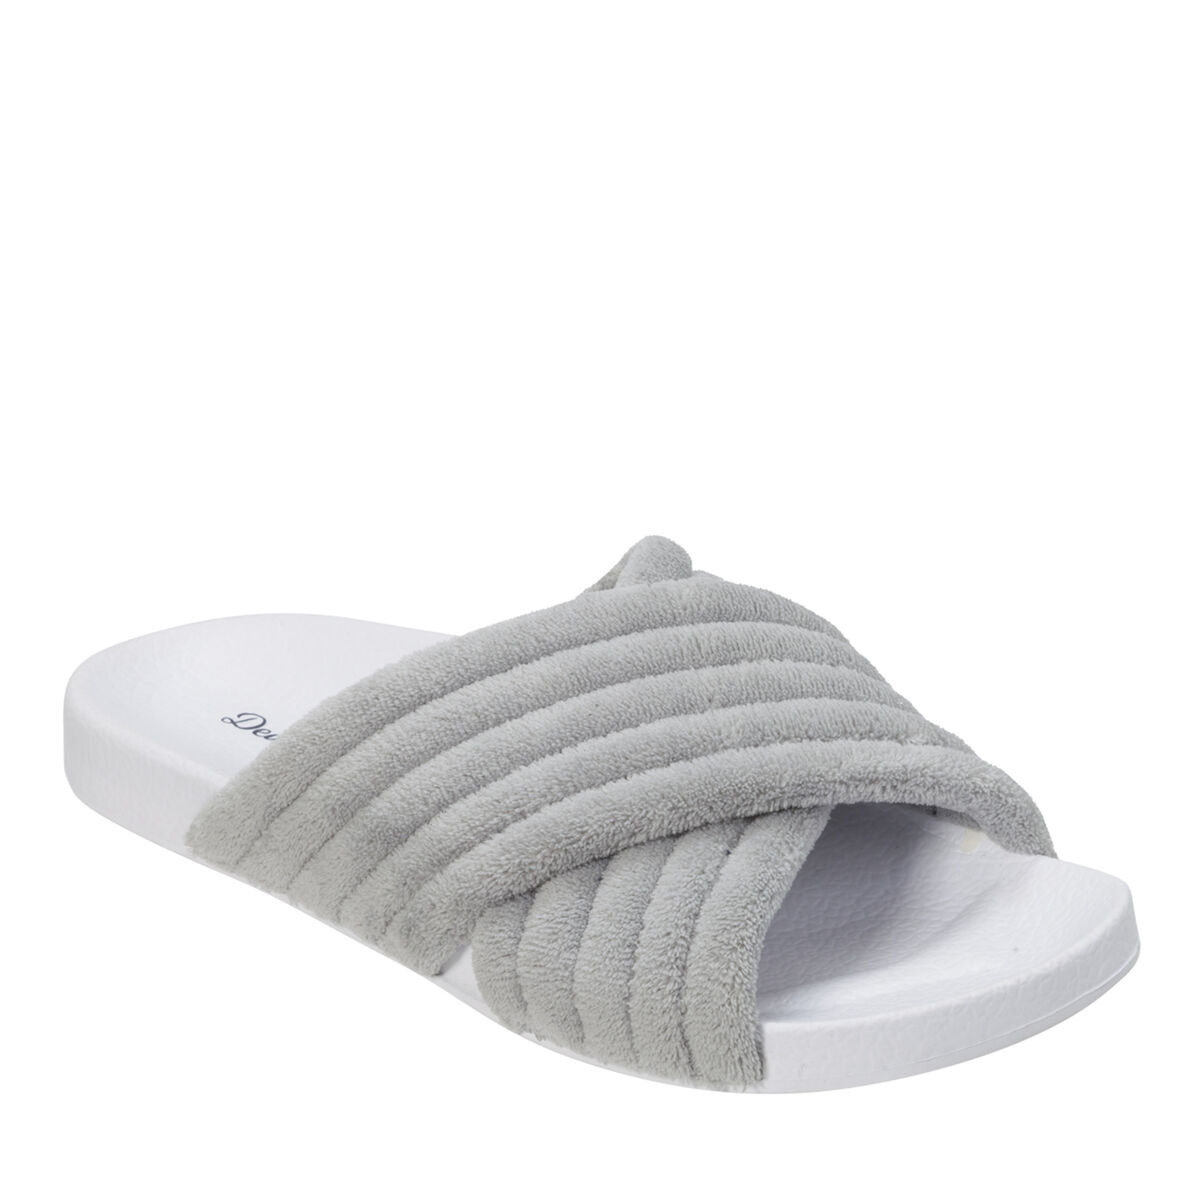 Women's Crossband Molded Footbed Slide